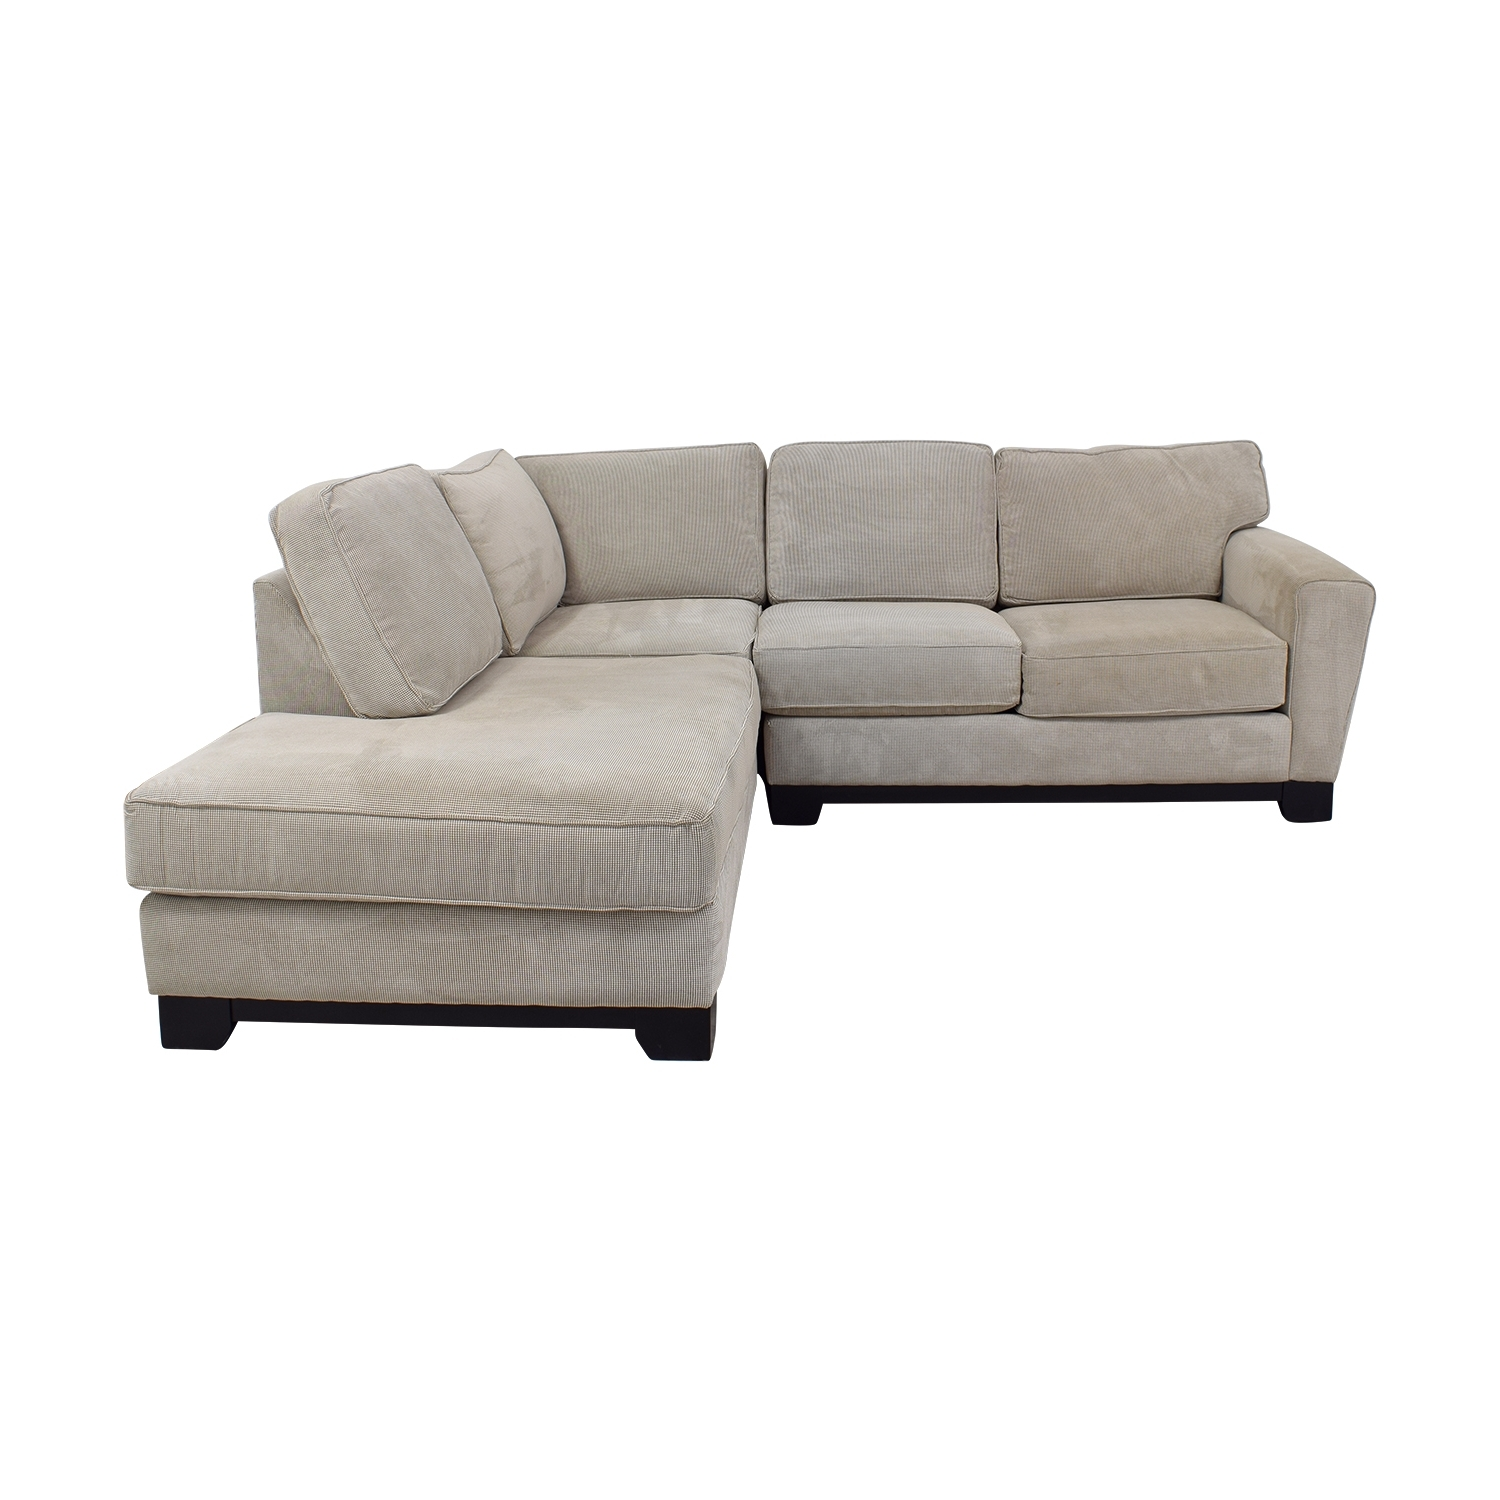 [%82% Off – Jordan's Furniture Jordan's Furniture Beige L Shaped Intended For 2018 Jordans Sectional Sofas|Jordans Sectional Sofas Regarding Best And Newest 82% Off – Jordan's Furniture Jordan's Furniture Beige L Shaped|Well Known Jordans Sectional Sofas With Regard To 82% Off – Jordan's Furniture Jordan's Furniture Beige L Shaped|Famous 82% Off – Jordan's Furniture Jordan's Furniture Beige L Shaped For Jordans Sectional Sofas%] (View 3 of 20)